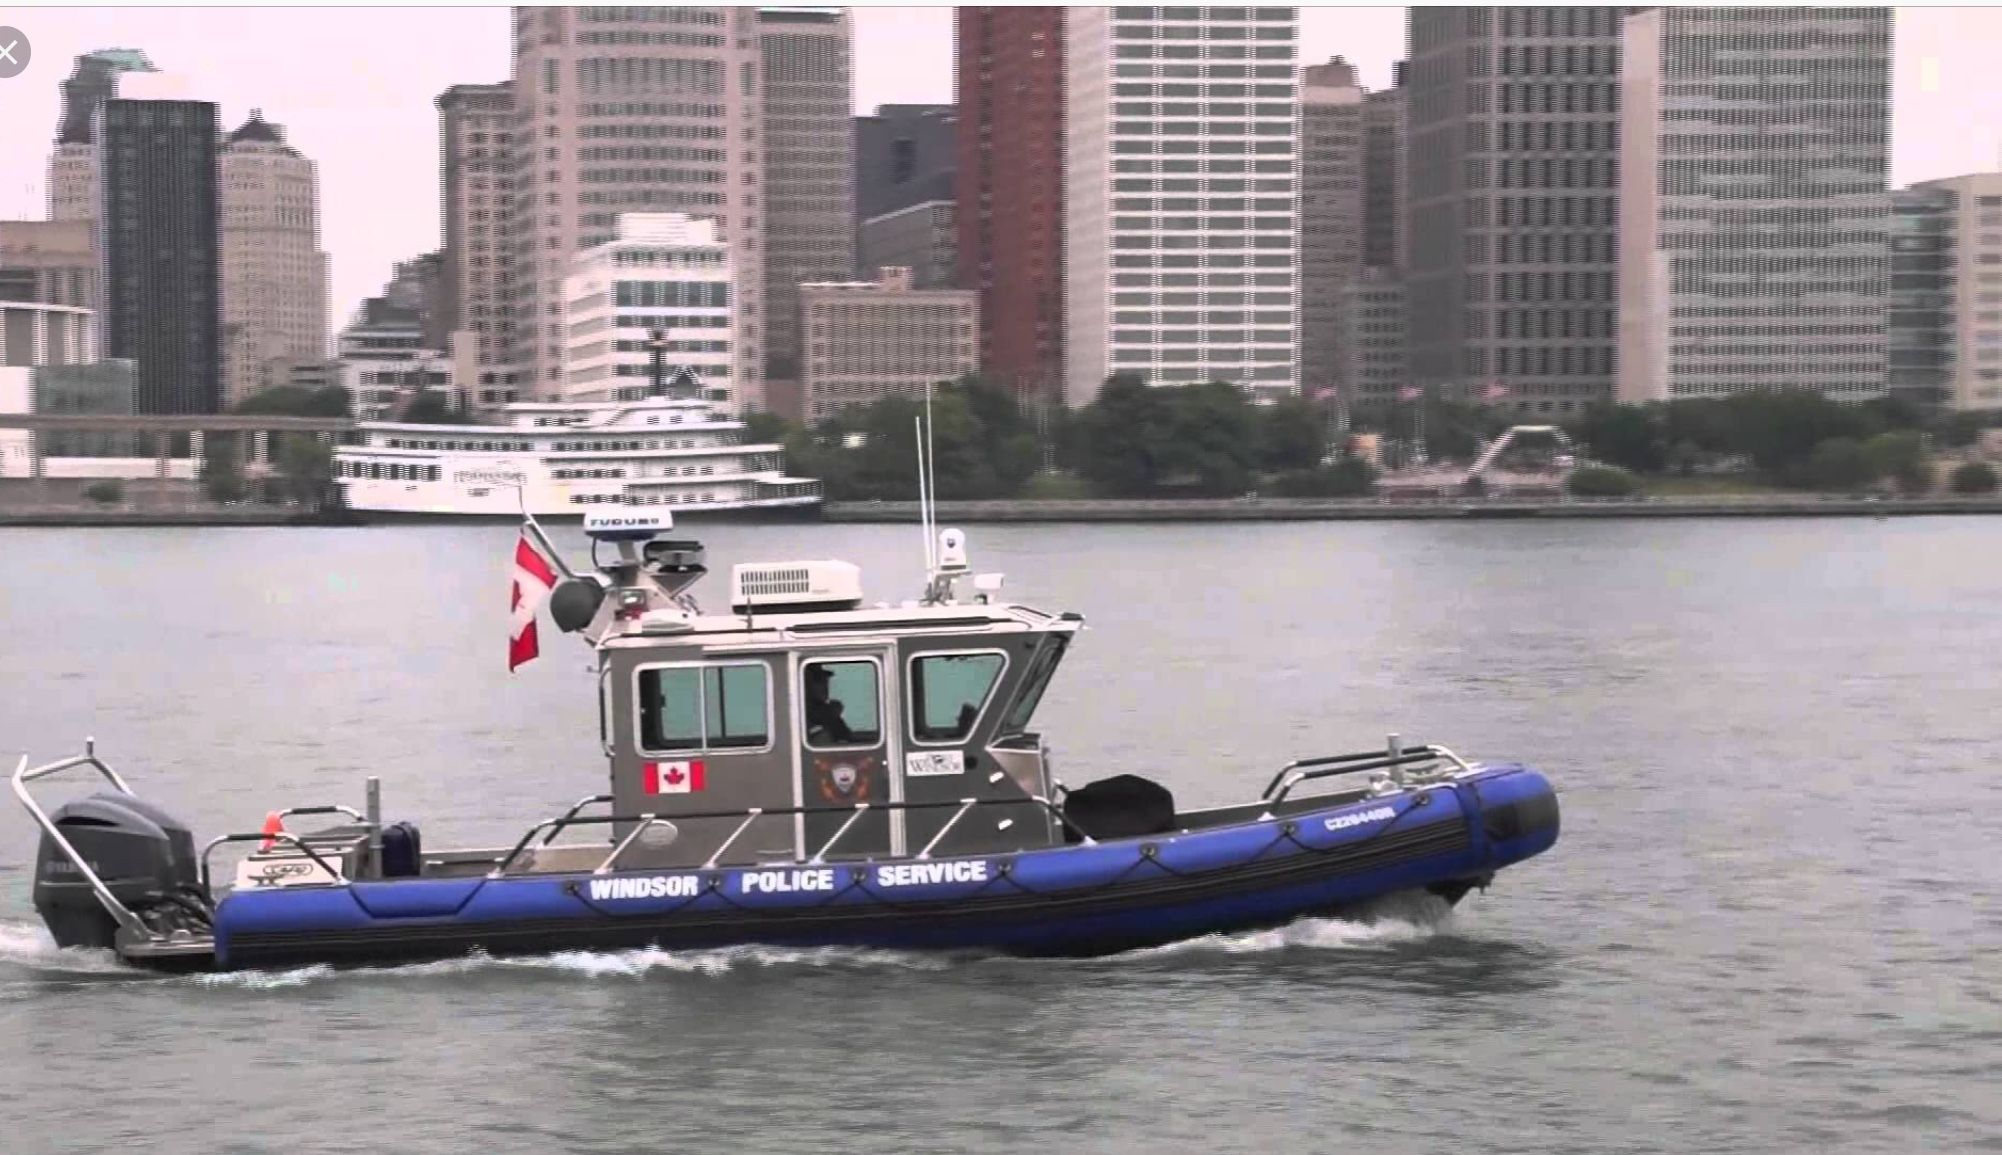 THE DEFENDER 2014 The Windsor Police Services Marine